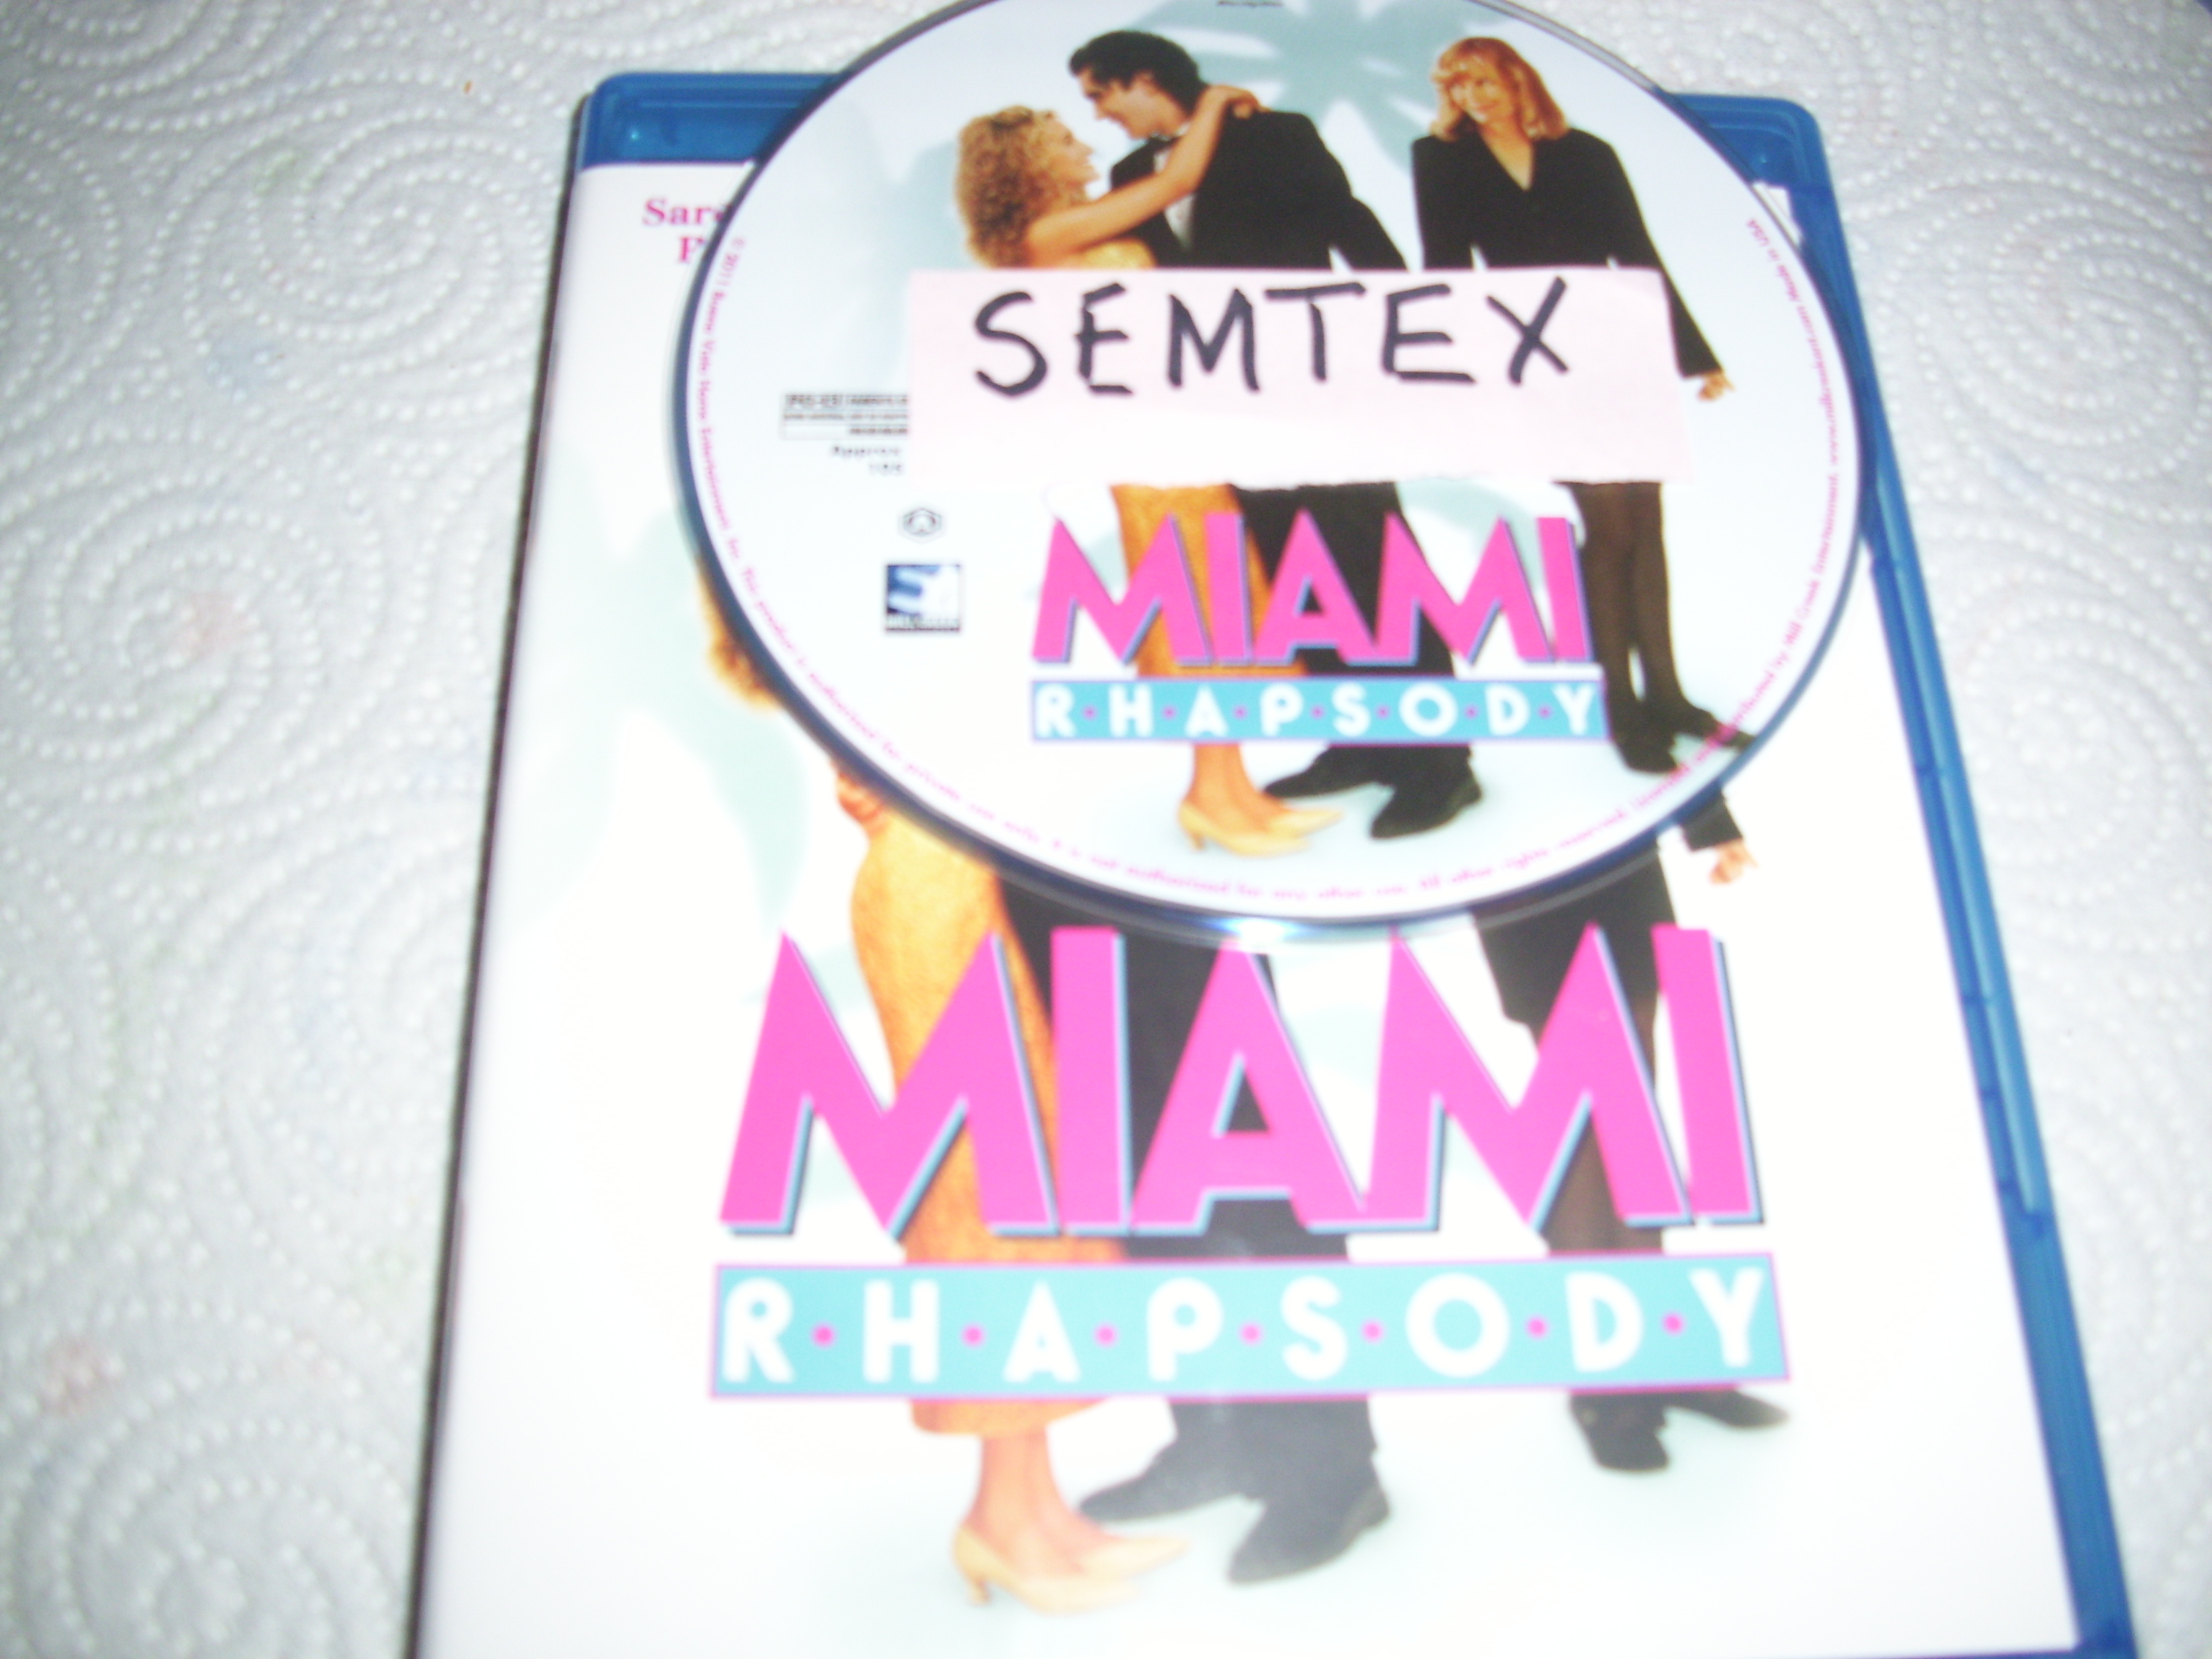 Miami Rhapsody 1995 720p BluRay x264-SEMTEX